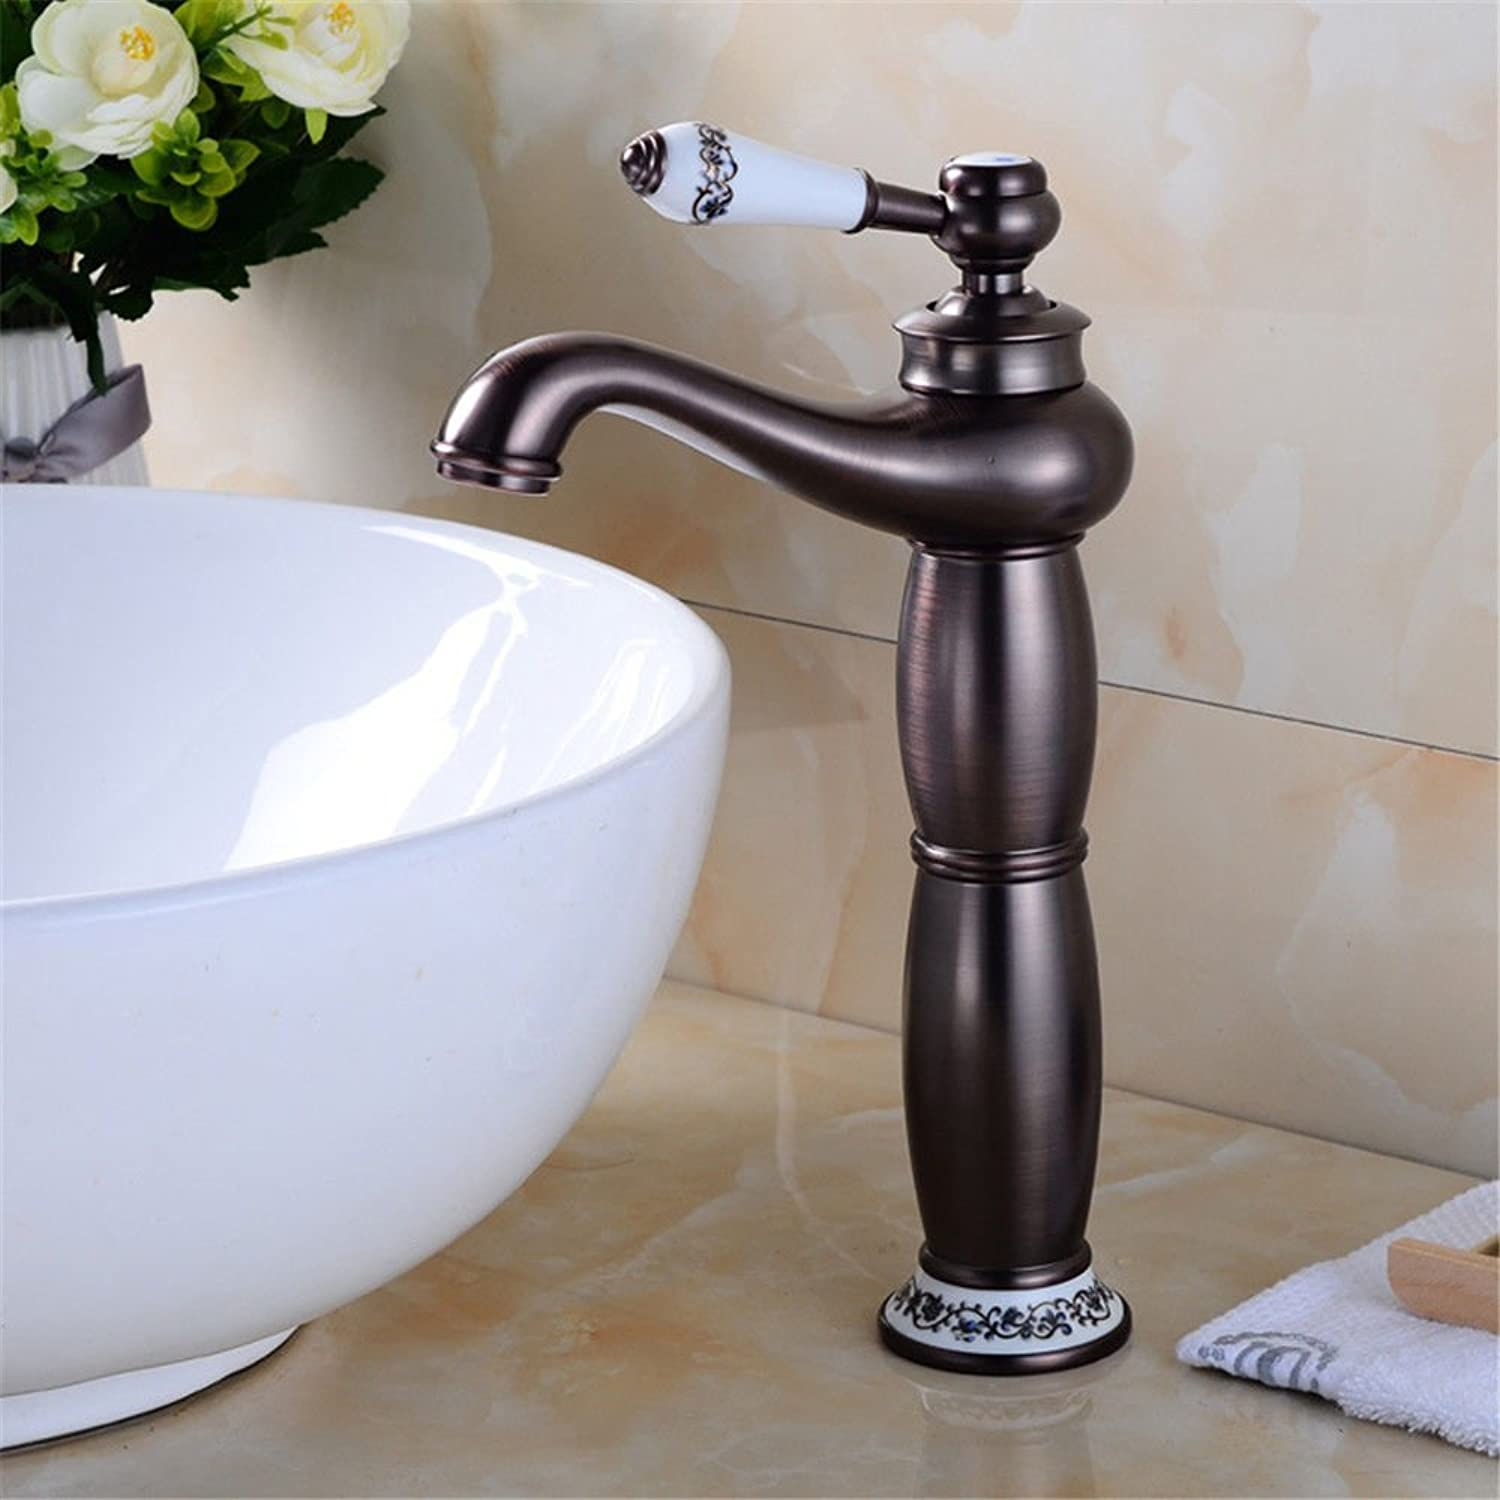 Hlluya Professional Sink Mixer Tap Kitchen Faucet The Copper Black faucet antique bathroom faucet basin cold water tap.